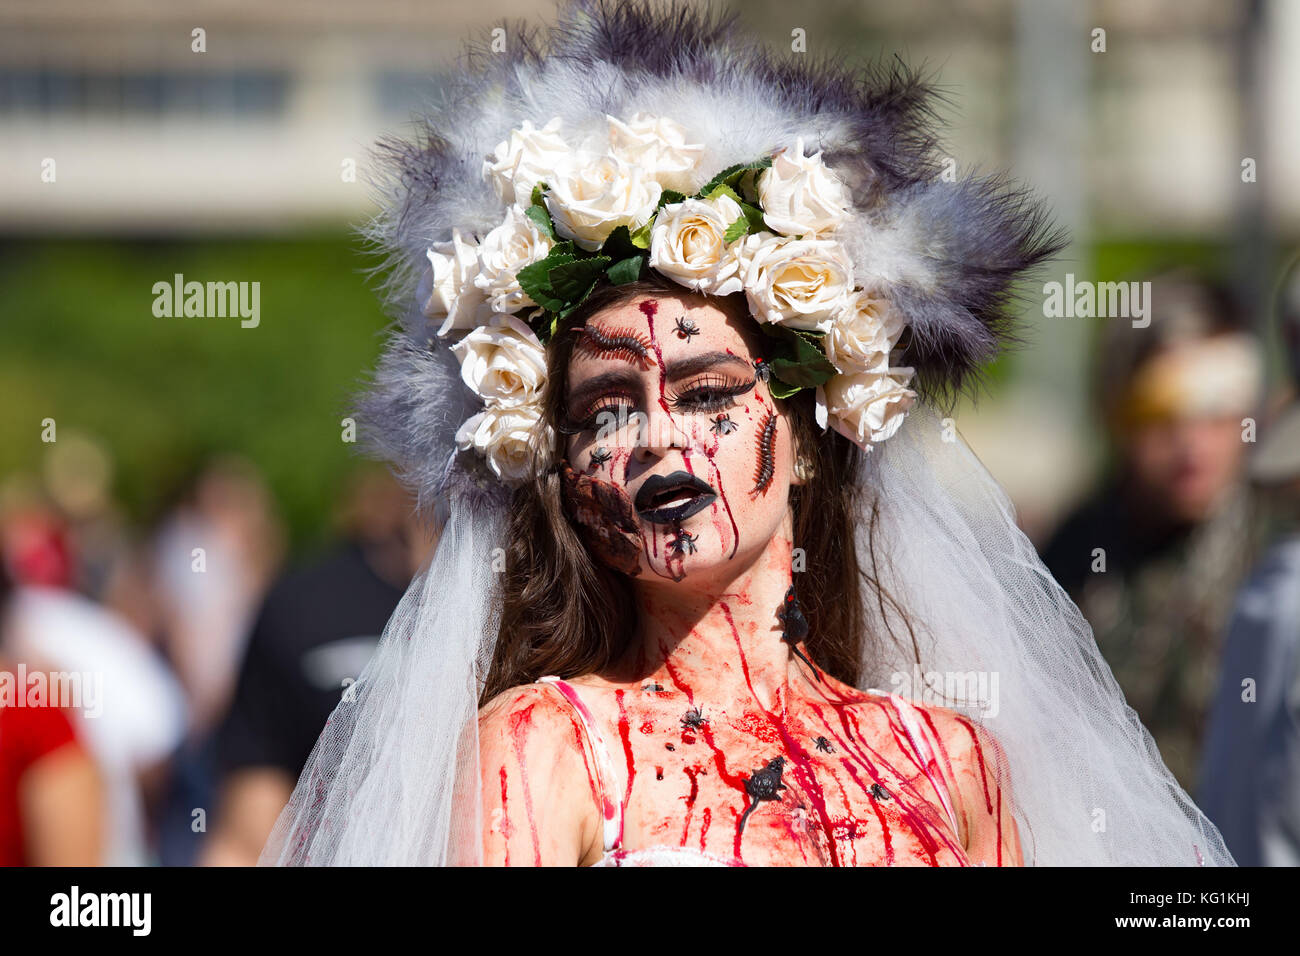 Sao Paulo, Sao Paulo, Brazil. 2nd Nov, 2017. Participants dressed in zombie costumes during the Zombie Walk in Sao Stock Photo